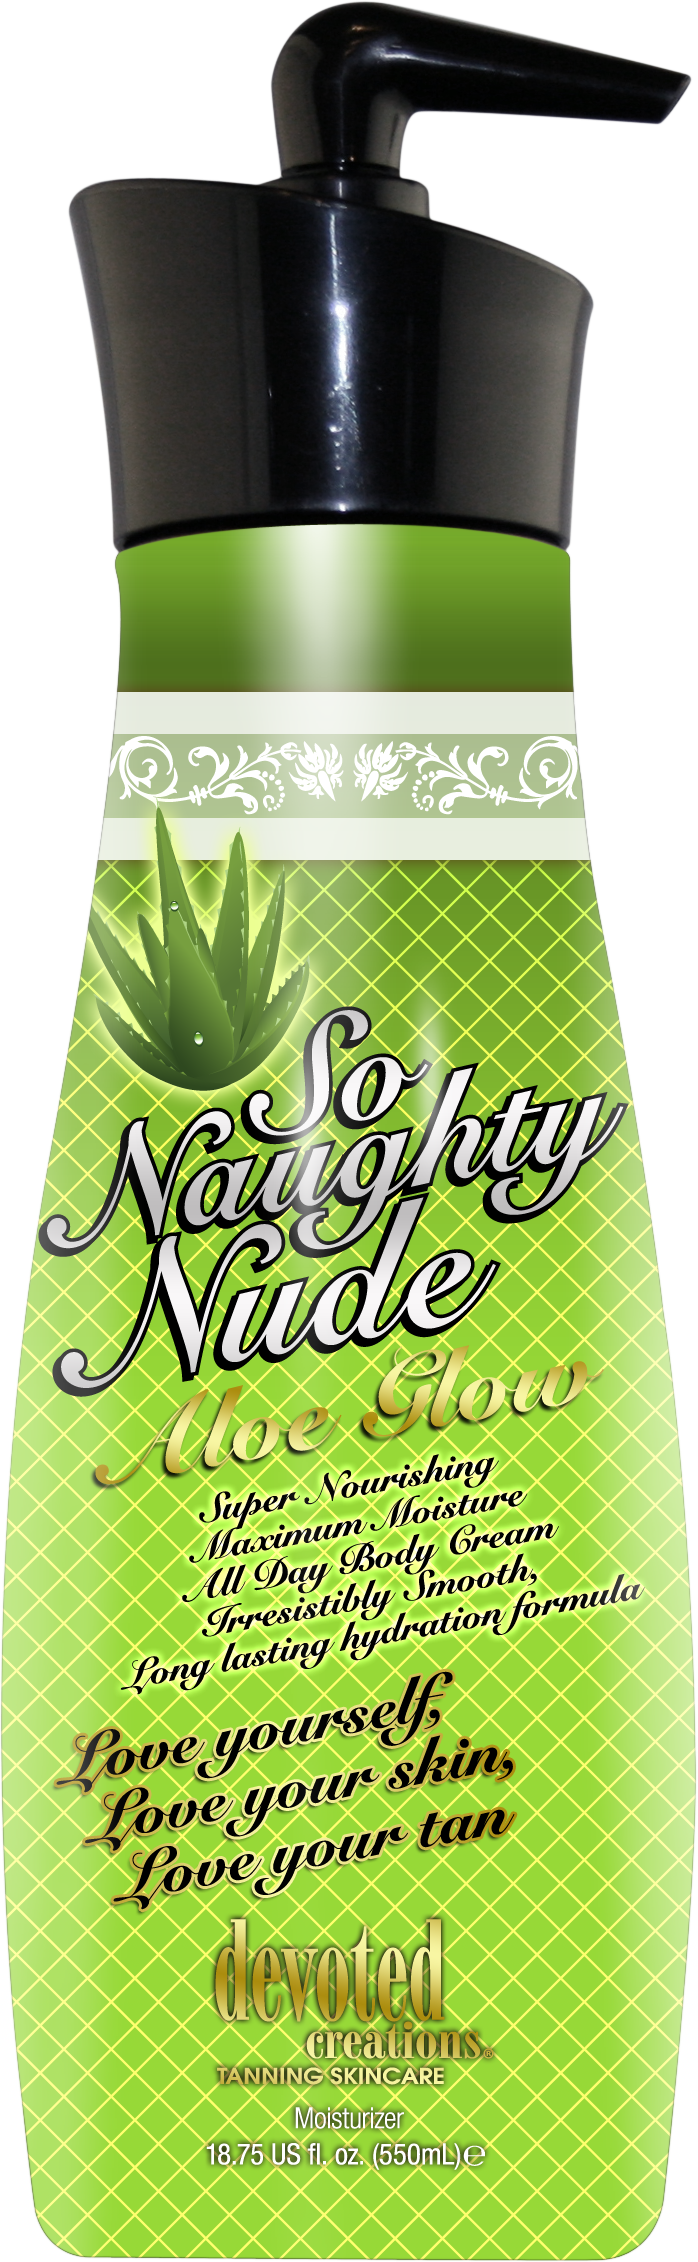 So Naughty Nude Aloe Glow™